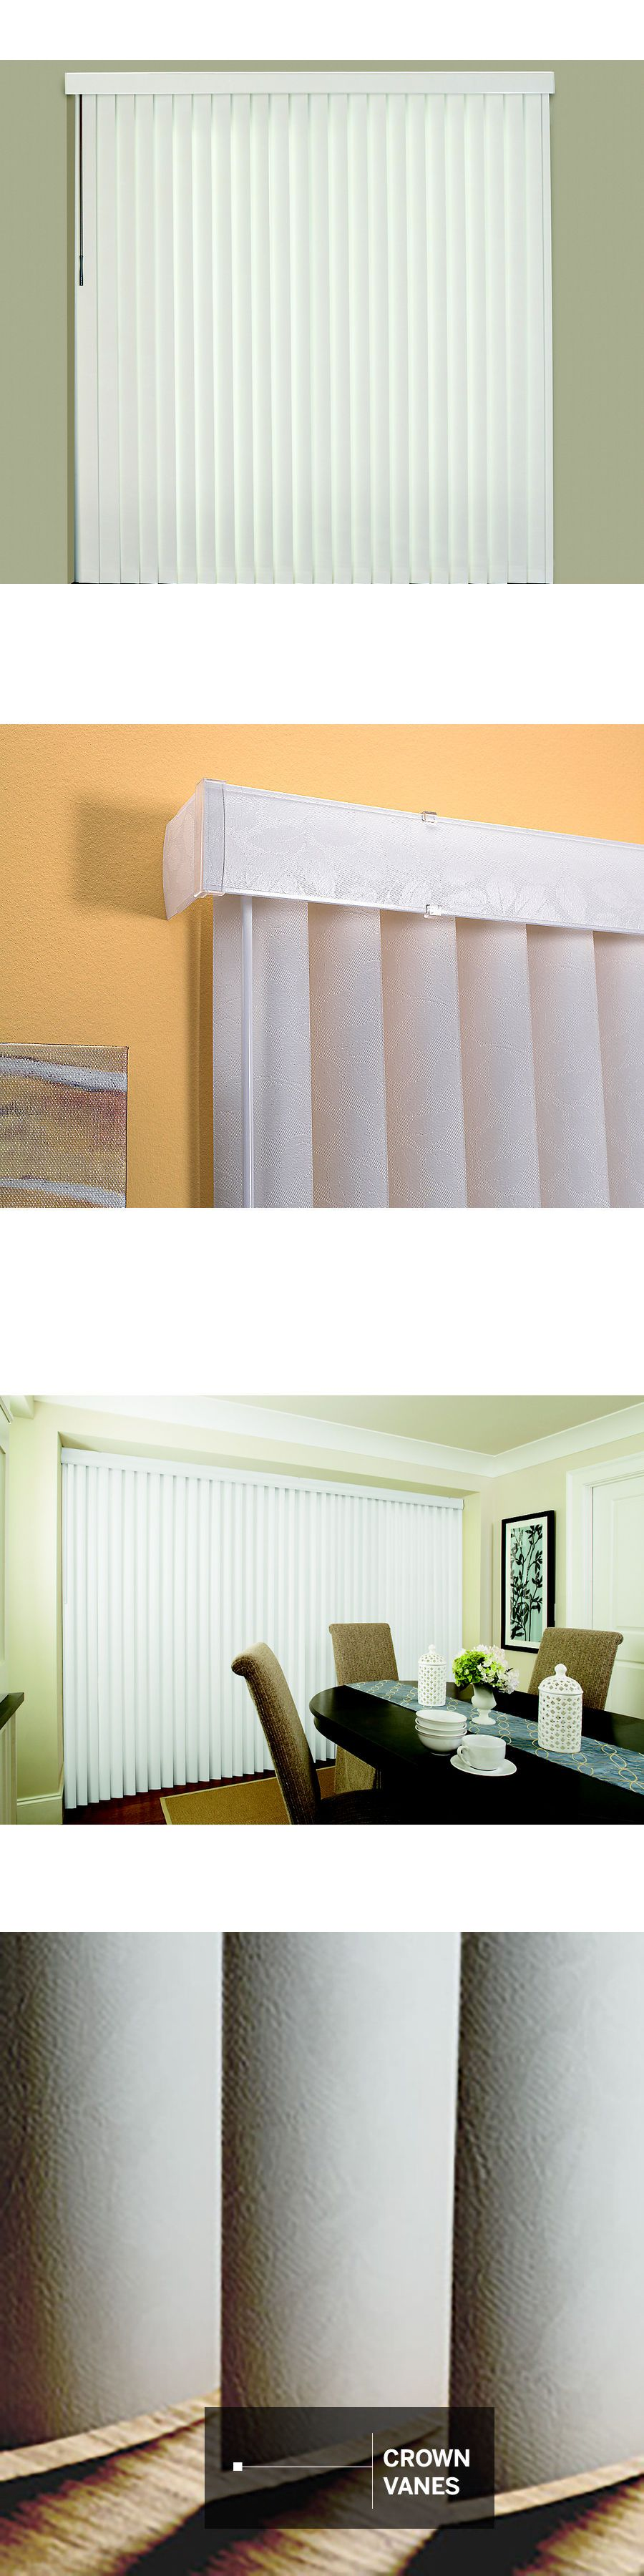 Blinds and shades 20585 custom size by levolor cordless